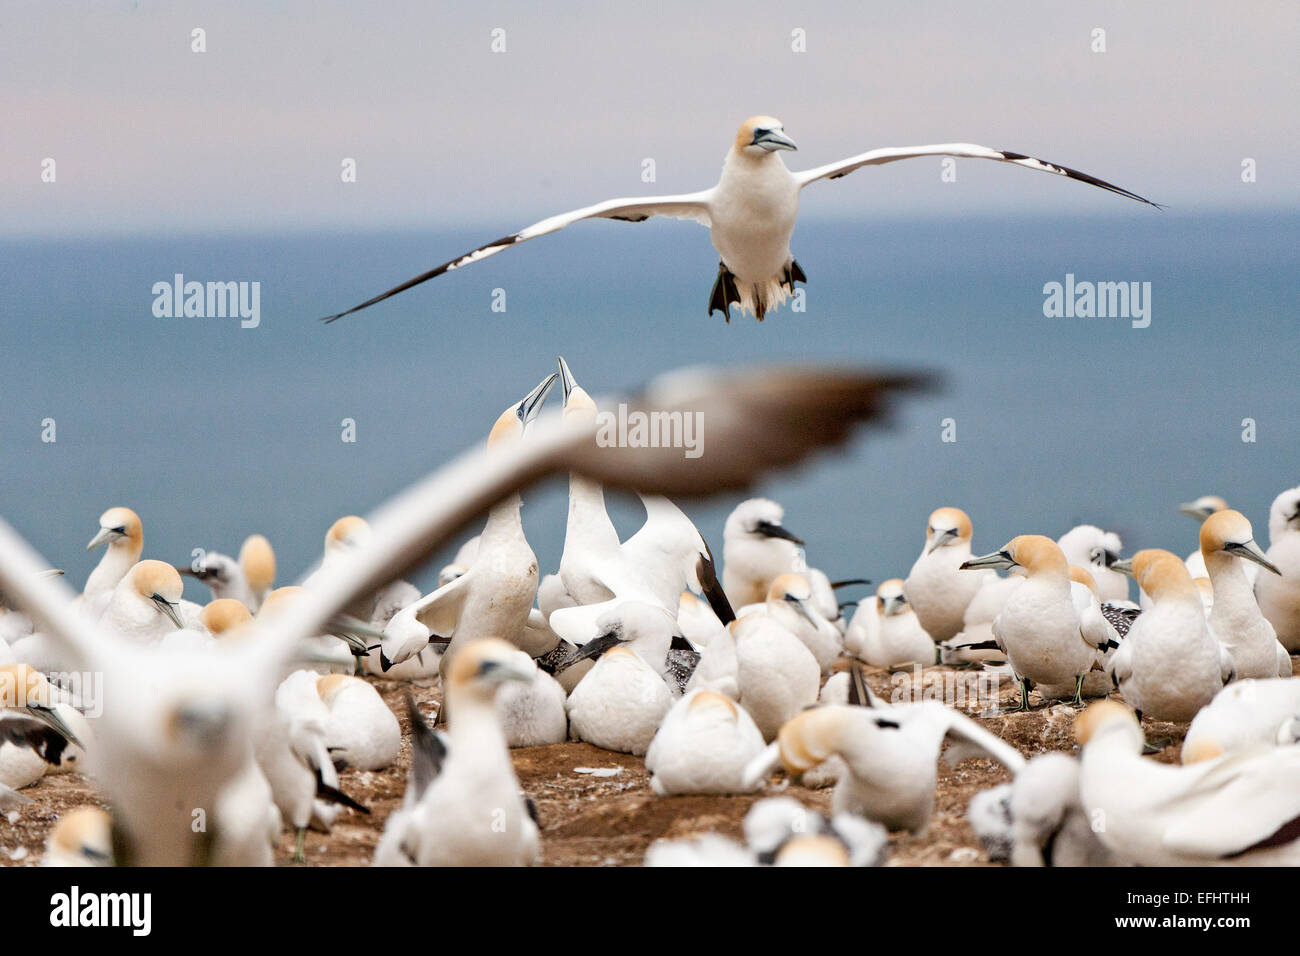 Australasian Gannet in flight, Breeding colony at Cape Kidnappers, Gannet Reserve, Hawke's Bay, North Island, - Stock Image